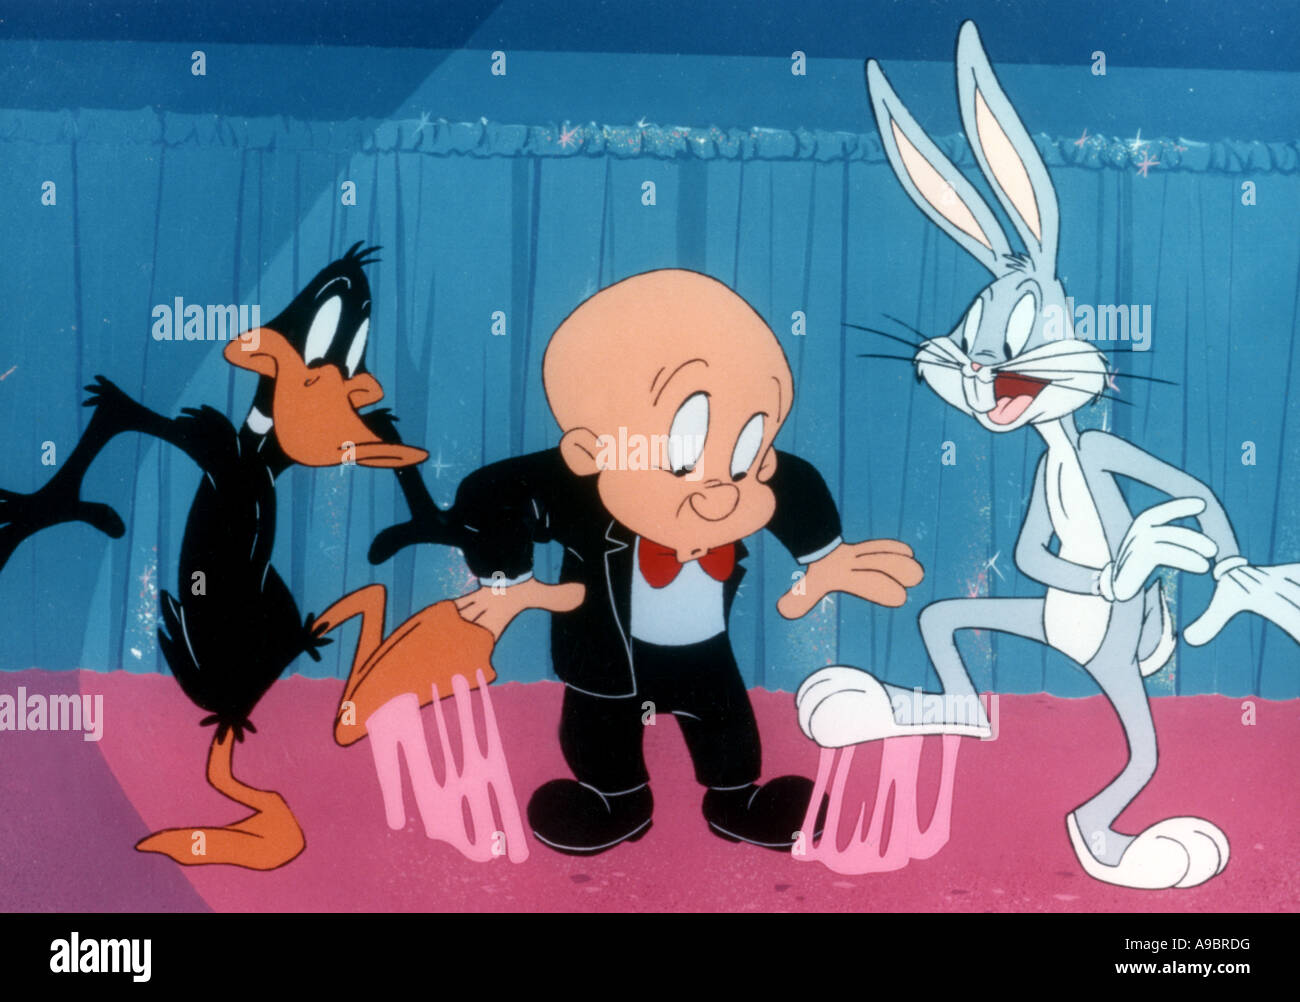 elmer fudd warner cartoon character here with bugs bunny and daffy duck stock image - Elmer Fudd Blue Christmas